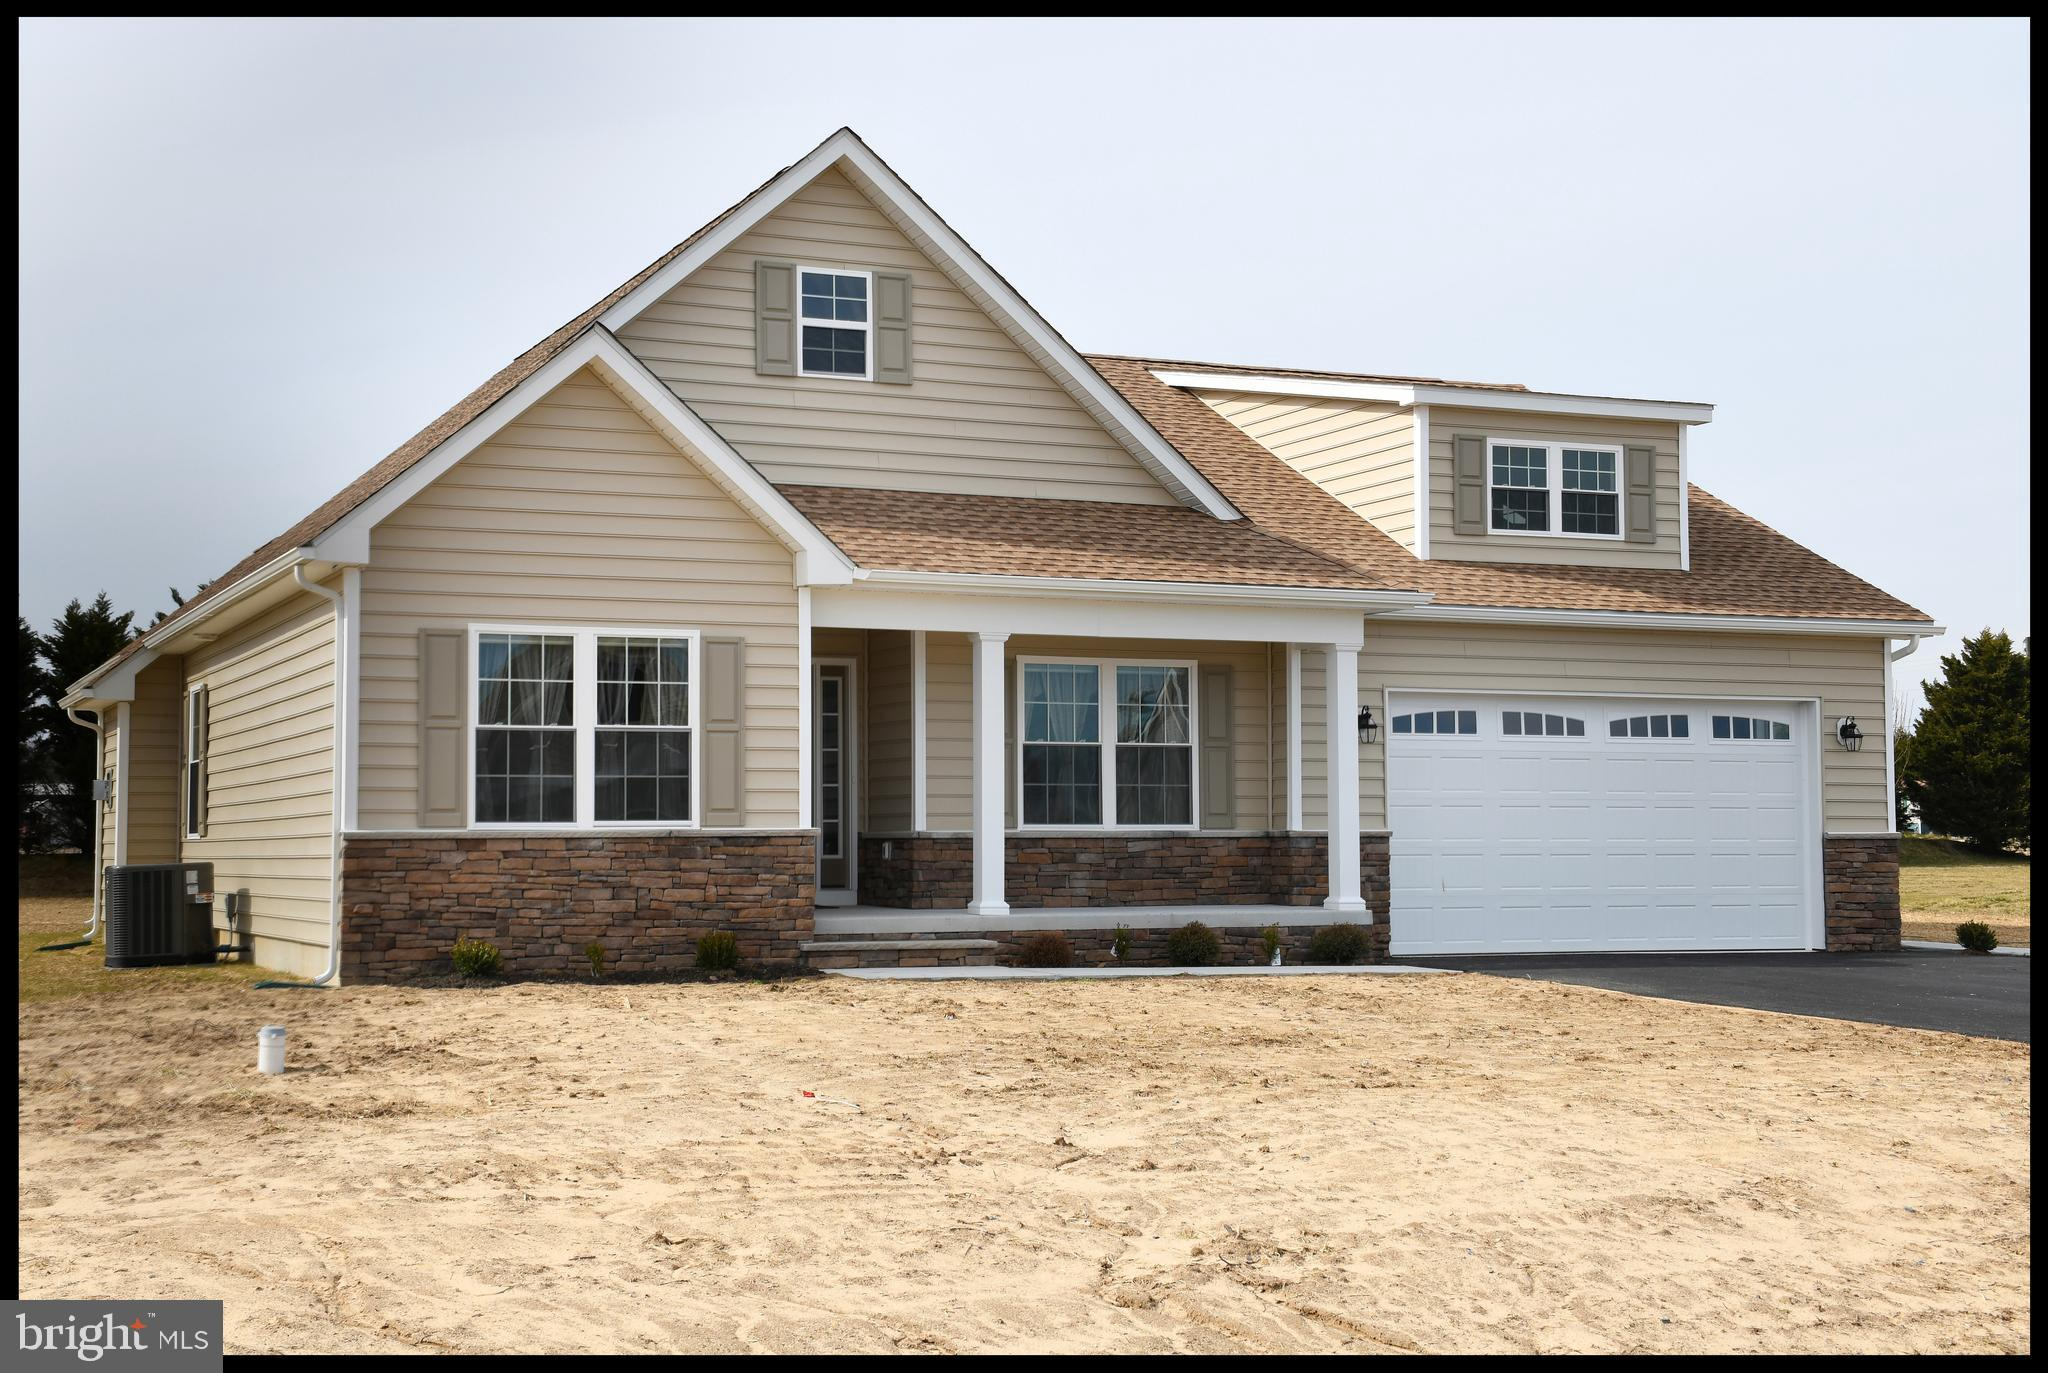 """""""The Delaware VI"""" model in Southfield.  Built by a local builder -Humes Construction.   This home is a split floor plan with three bedrooms and two full baths.  Open floor plan with gathering area,  kitchen and breakfast nook with vinyl plank flooring.  Kitchen has island, Wolf cabinets, granite, & stainless appliances.  Owners suite has full bath and walk in closet.  Two nicely sized guest bedrooms and a full guest bath.   Large laundry.  Two car finished garage.  Front porch, deck & sunroom.  Community water, County sewer, and natural gas.  Only county taxes."""